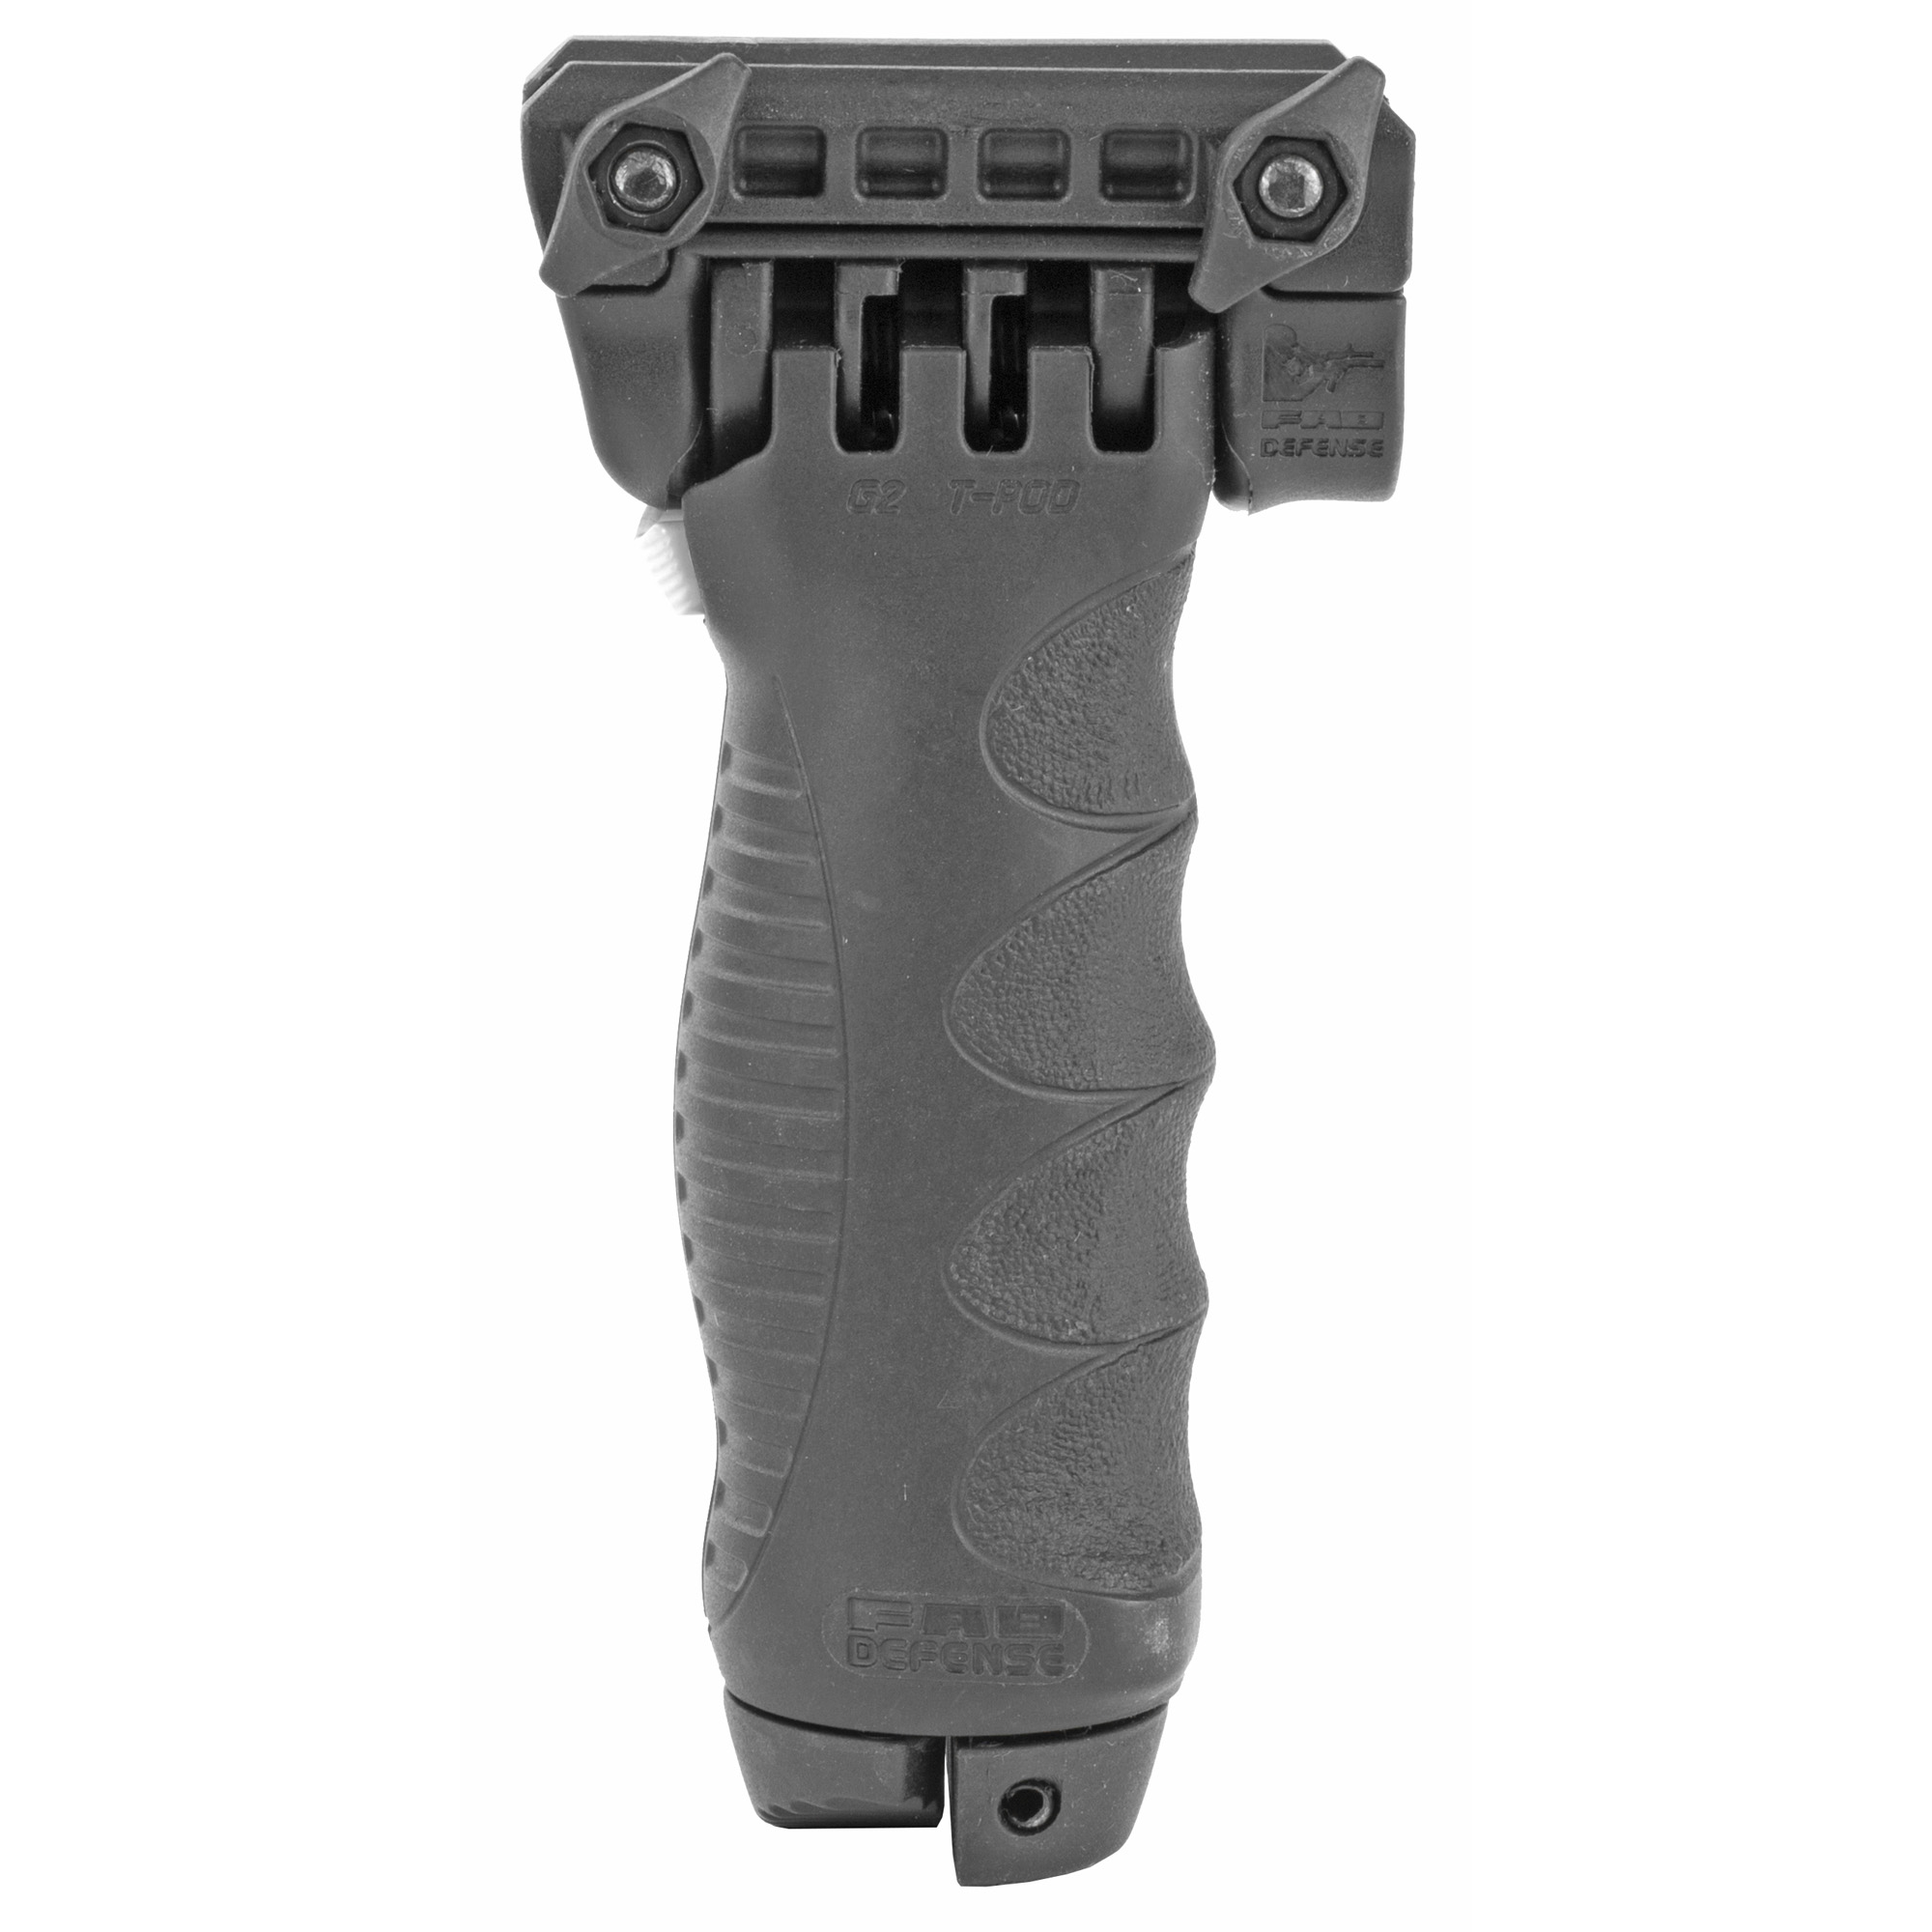 The T-POD G2 QR is a State-of-the-Art Foregrip that swiftly transforms into a fully functional Bipod by the push of a button. It's wide angle leg opening offers stability and enhancing combat positioning. It is built for quick transition from close range engagement to longer range precision targets.